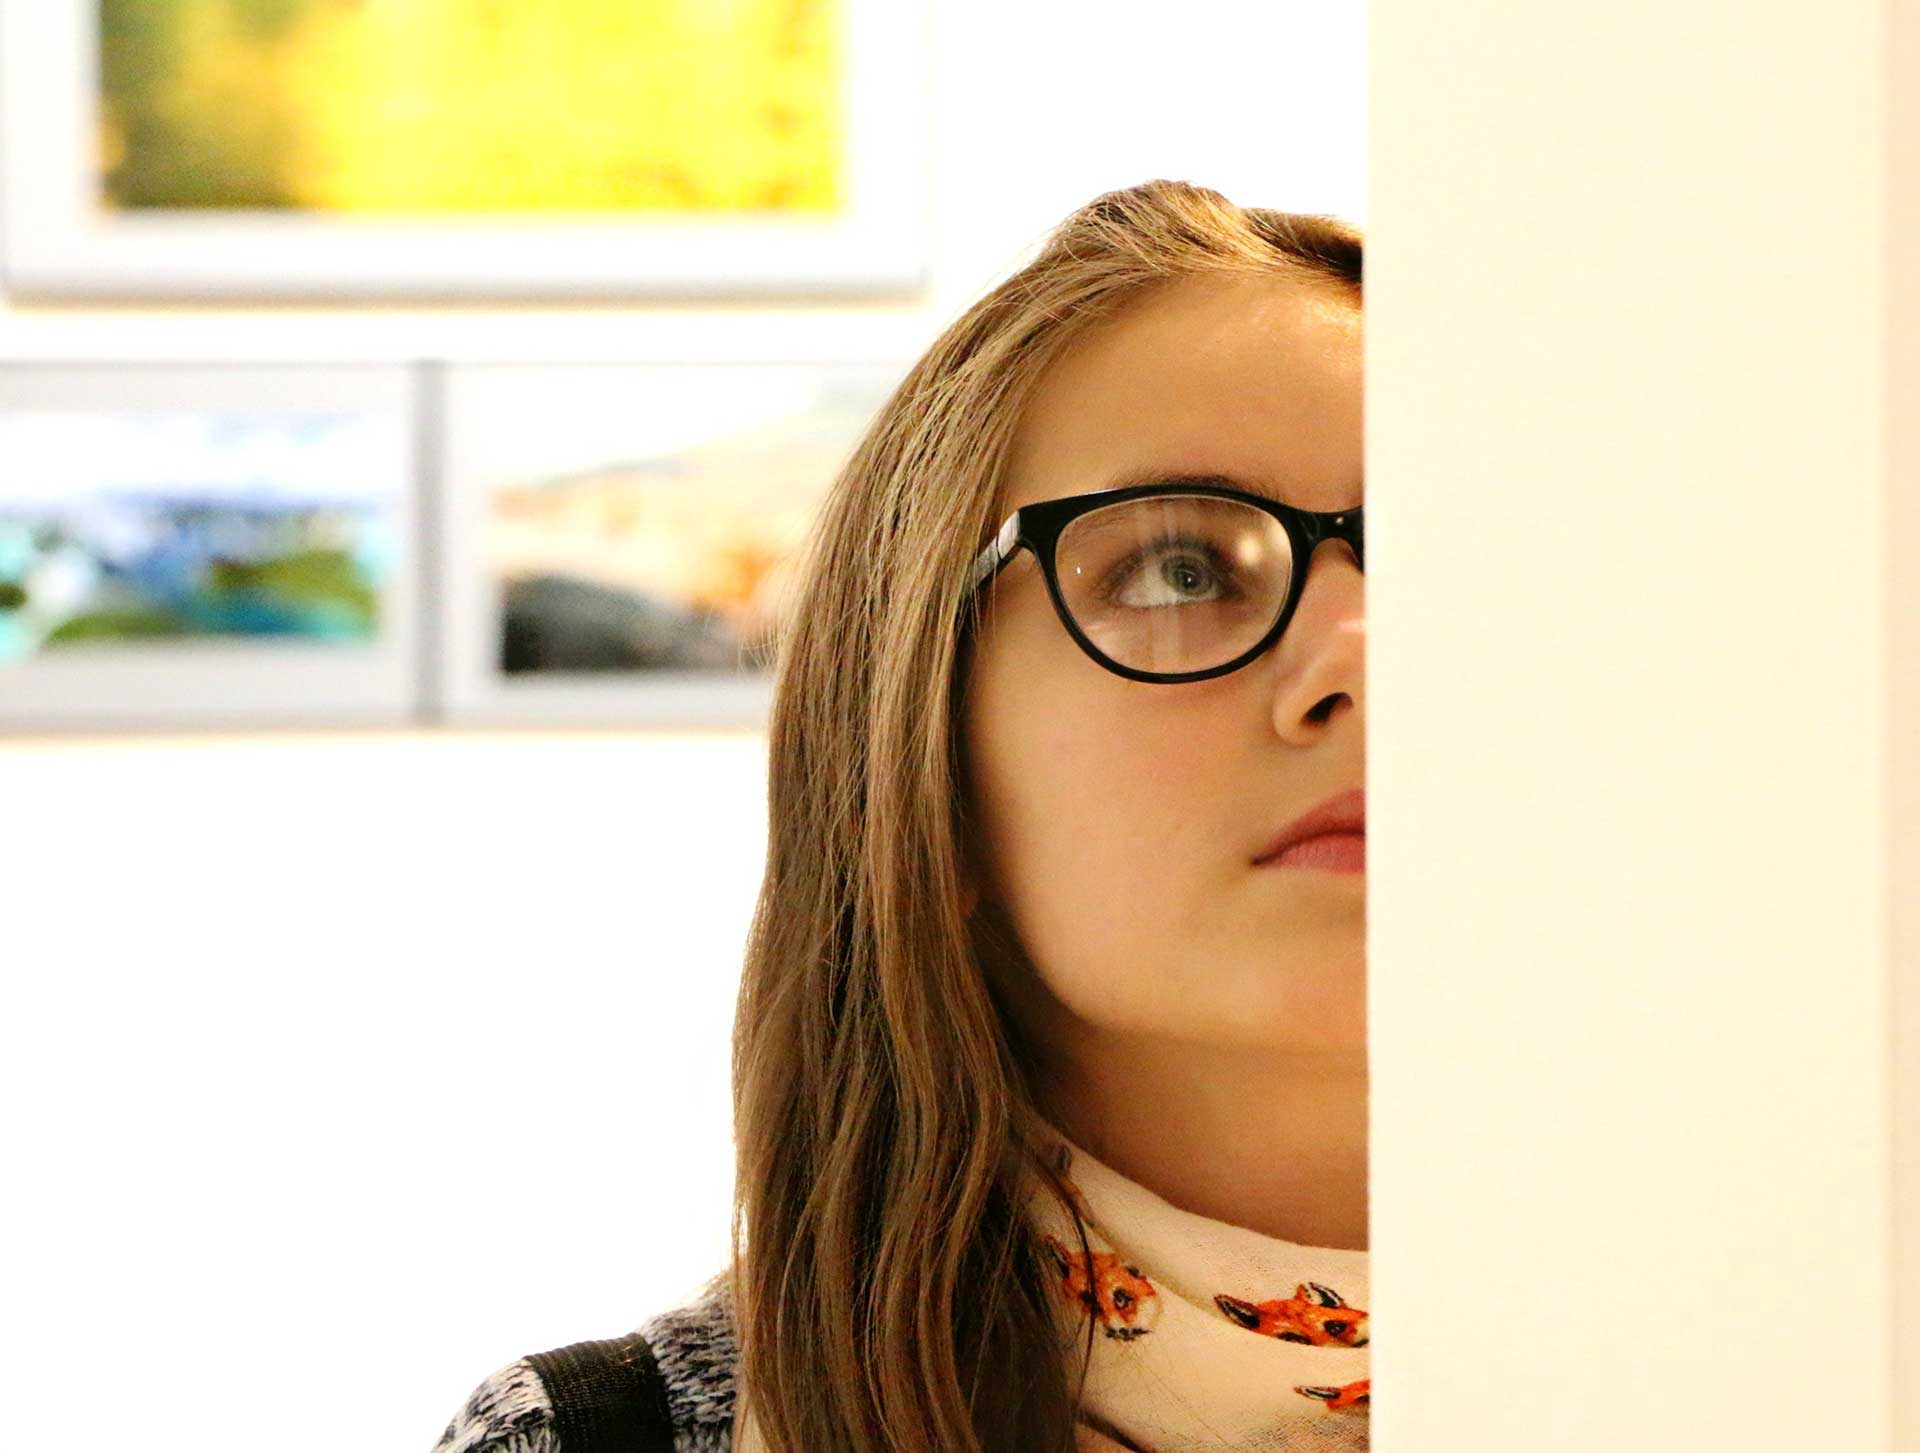 a girl with glasses looking up at the wall of an art gallery